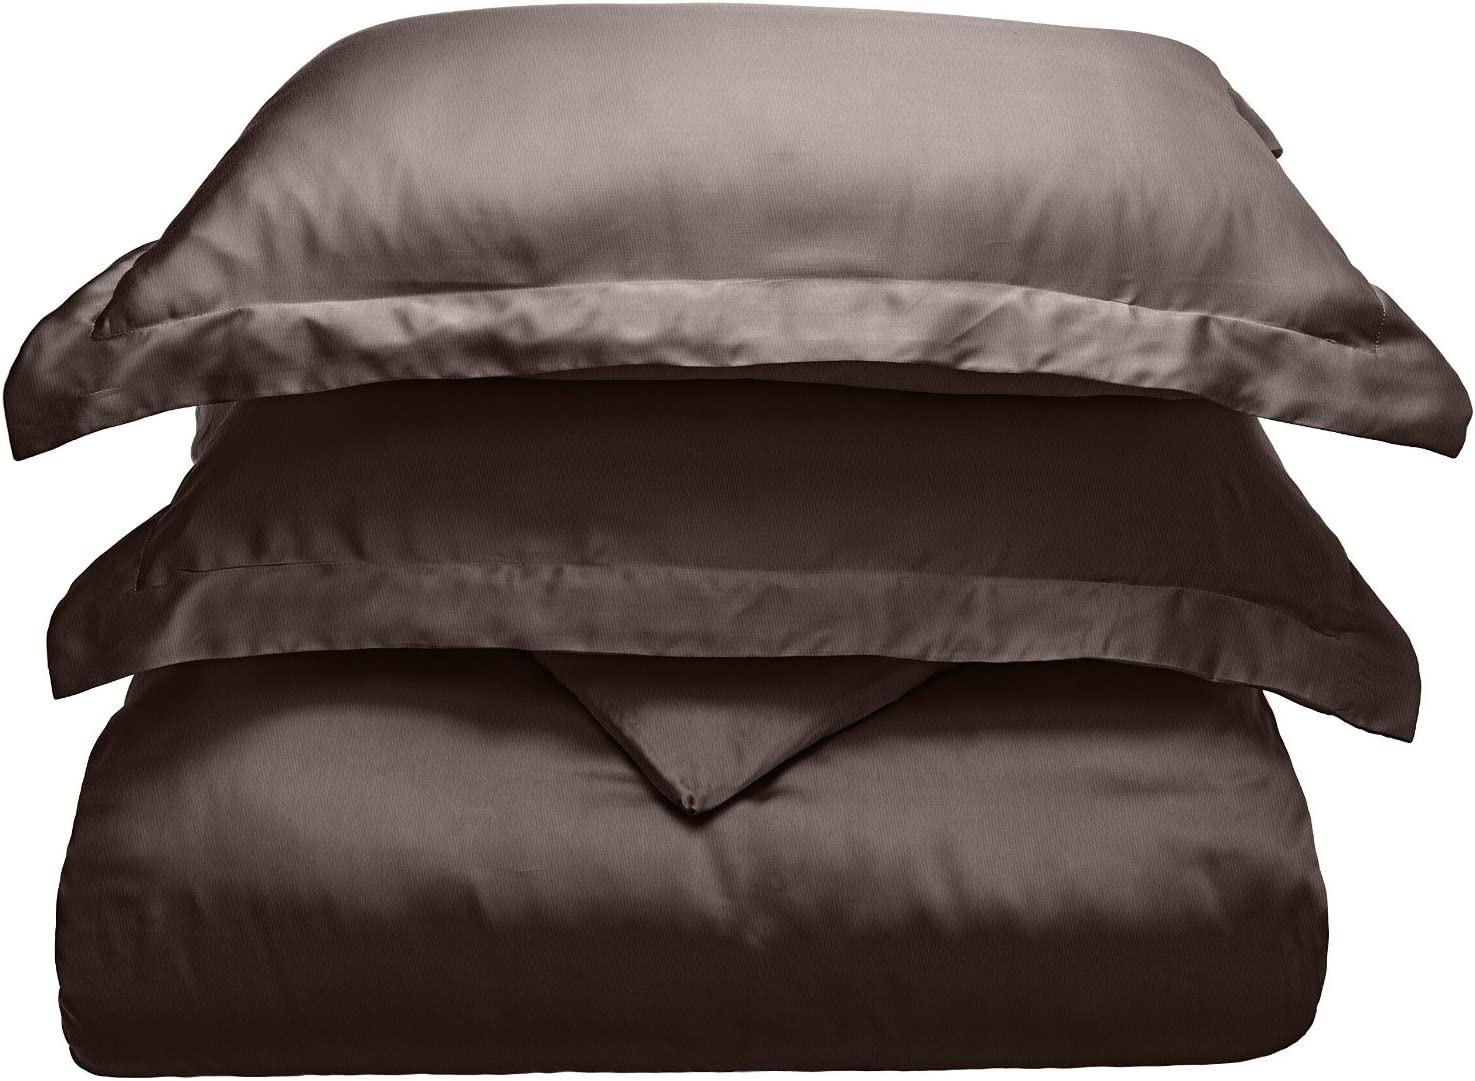 SUPERIOR Ultra Soft Modal from Beach Max 83% OFF King Cover K Easy-to-use Set Cal Duvet